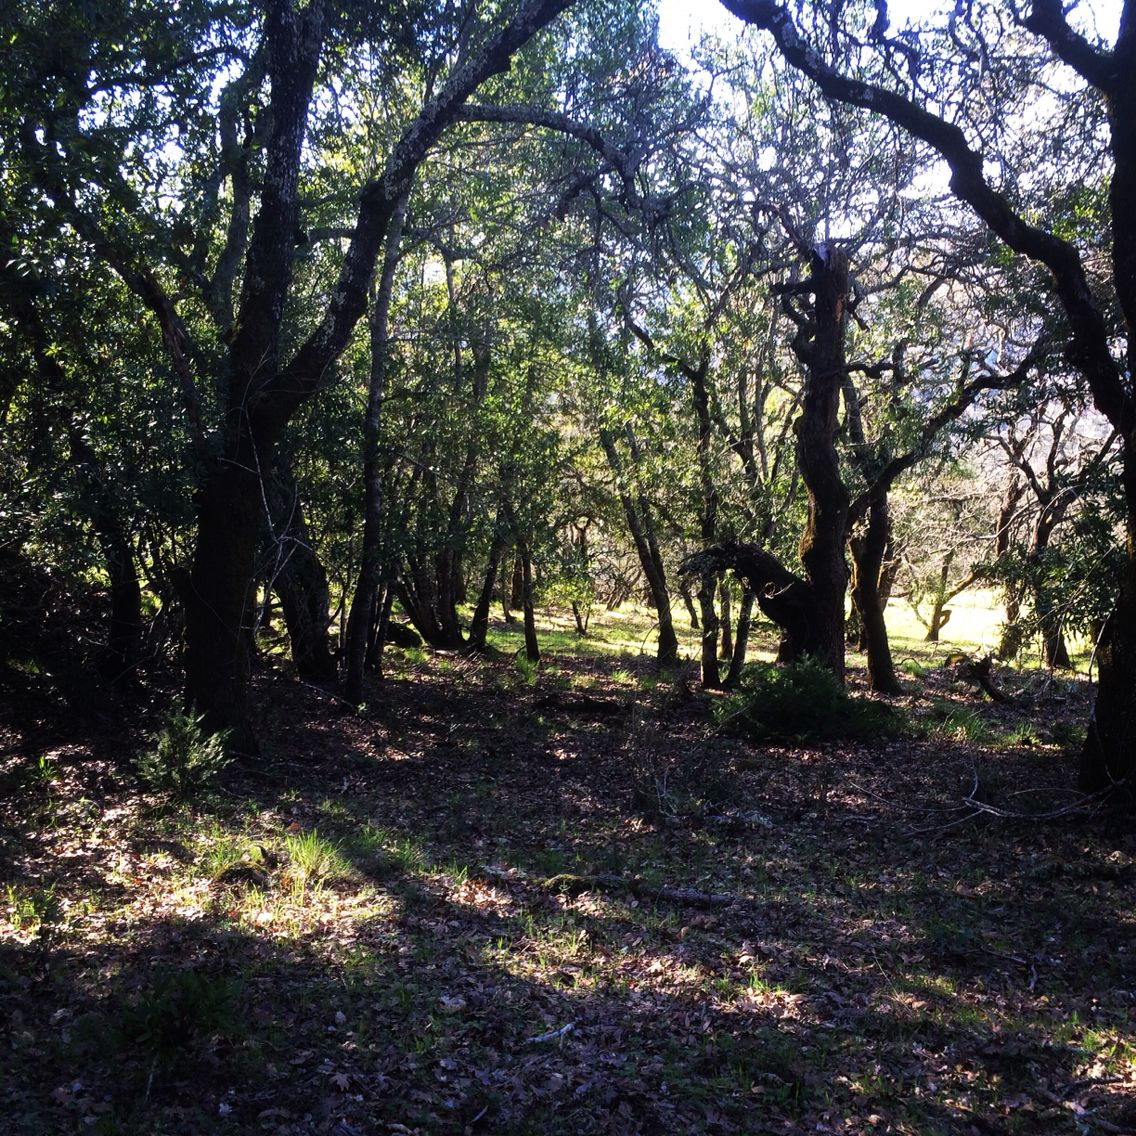 Off-trail in Annadel